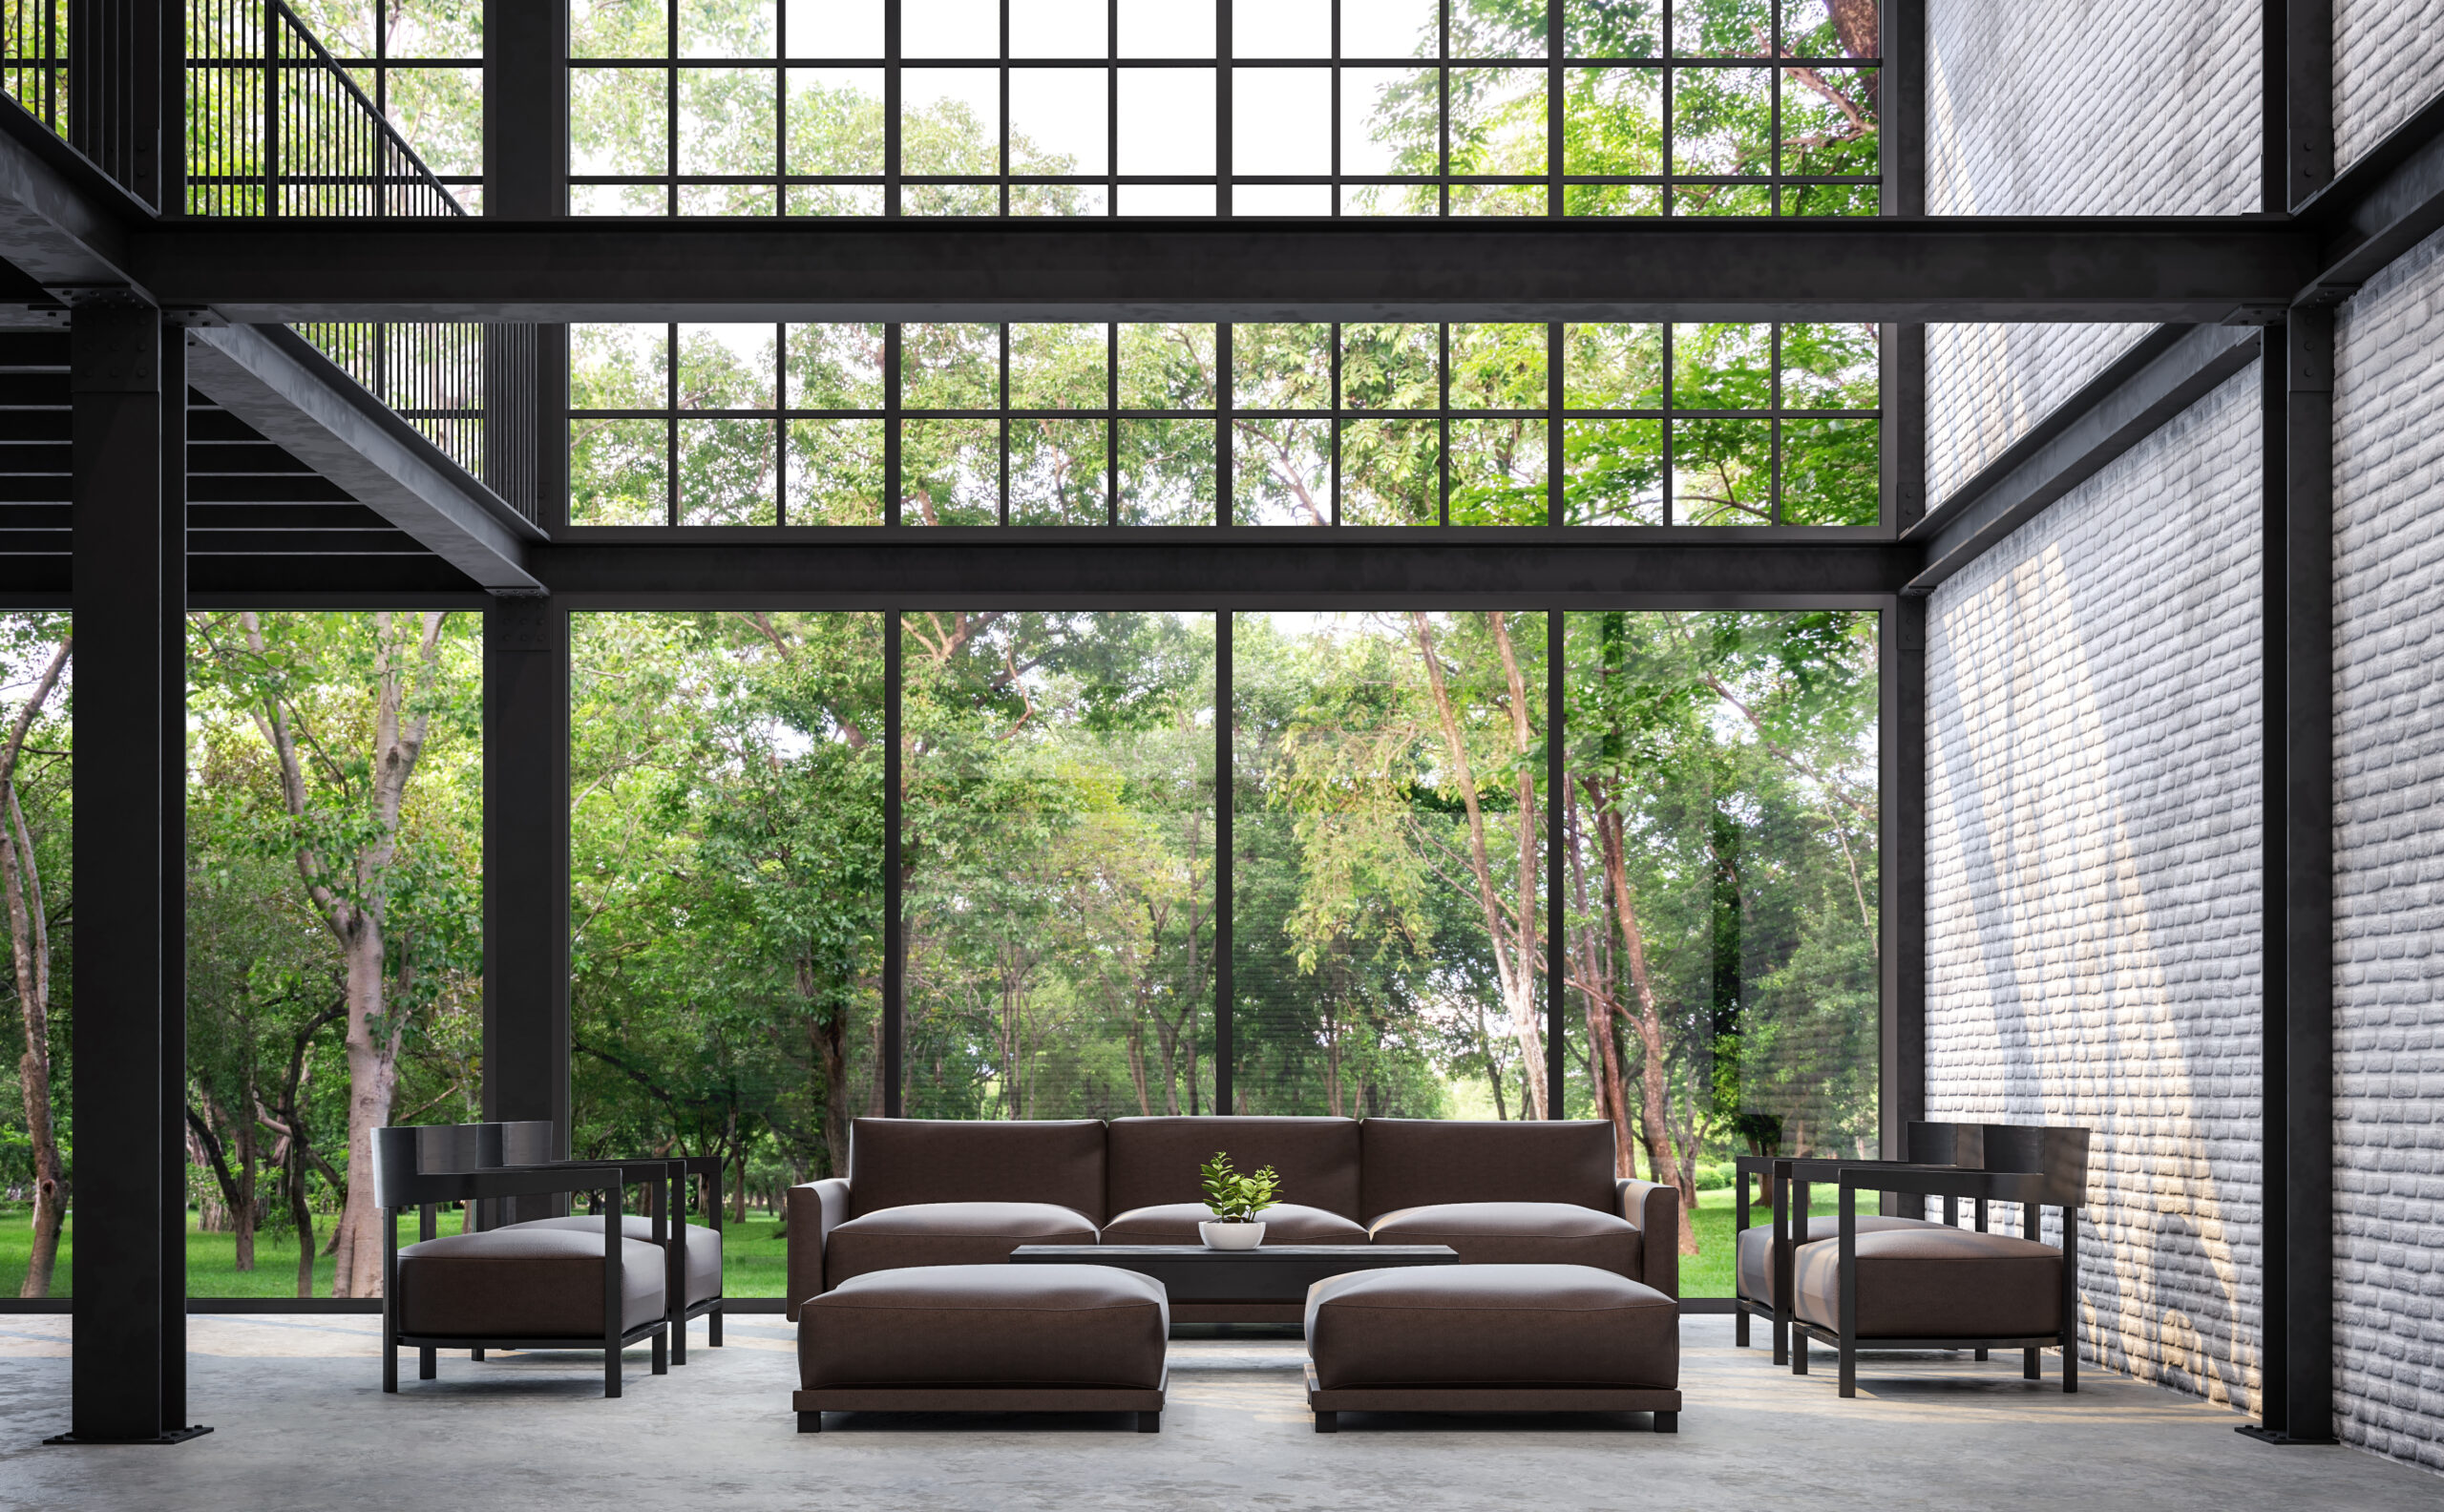 Loft style living room with nature view 3d rendering image.There are white brick wall,polished concrete floor and black steel structure.Furnished with dark brown leather sofa.